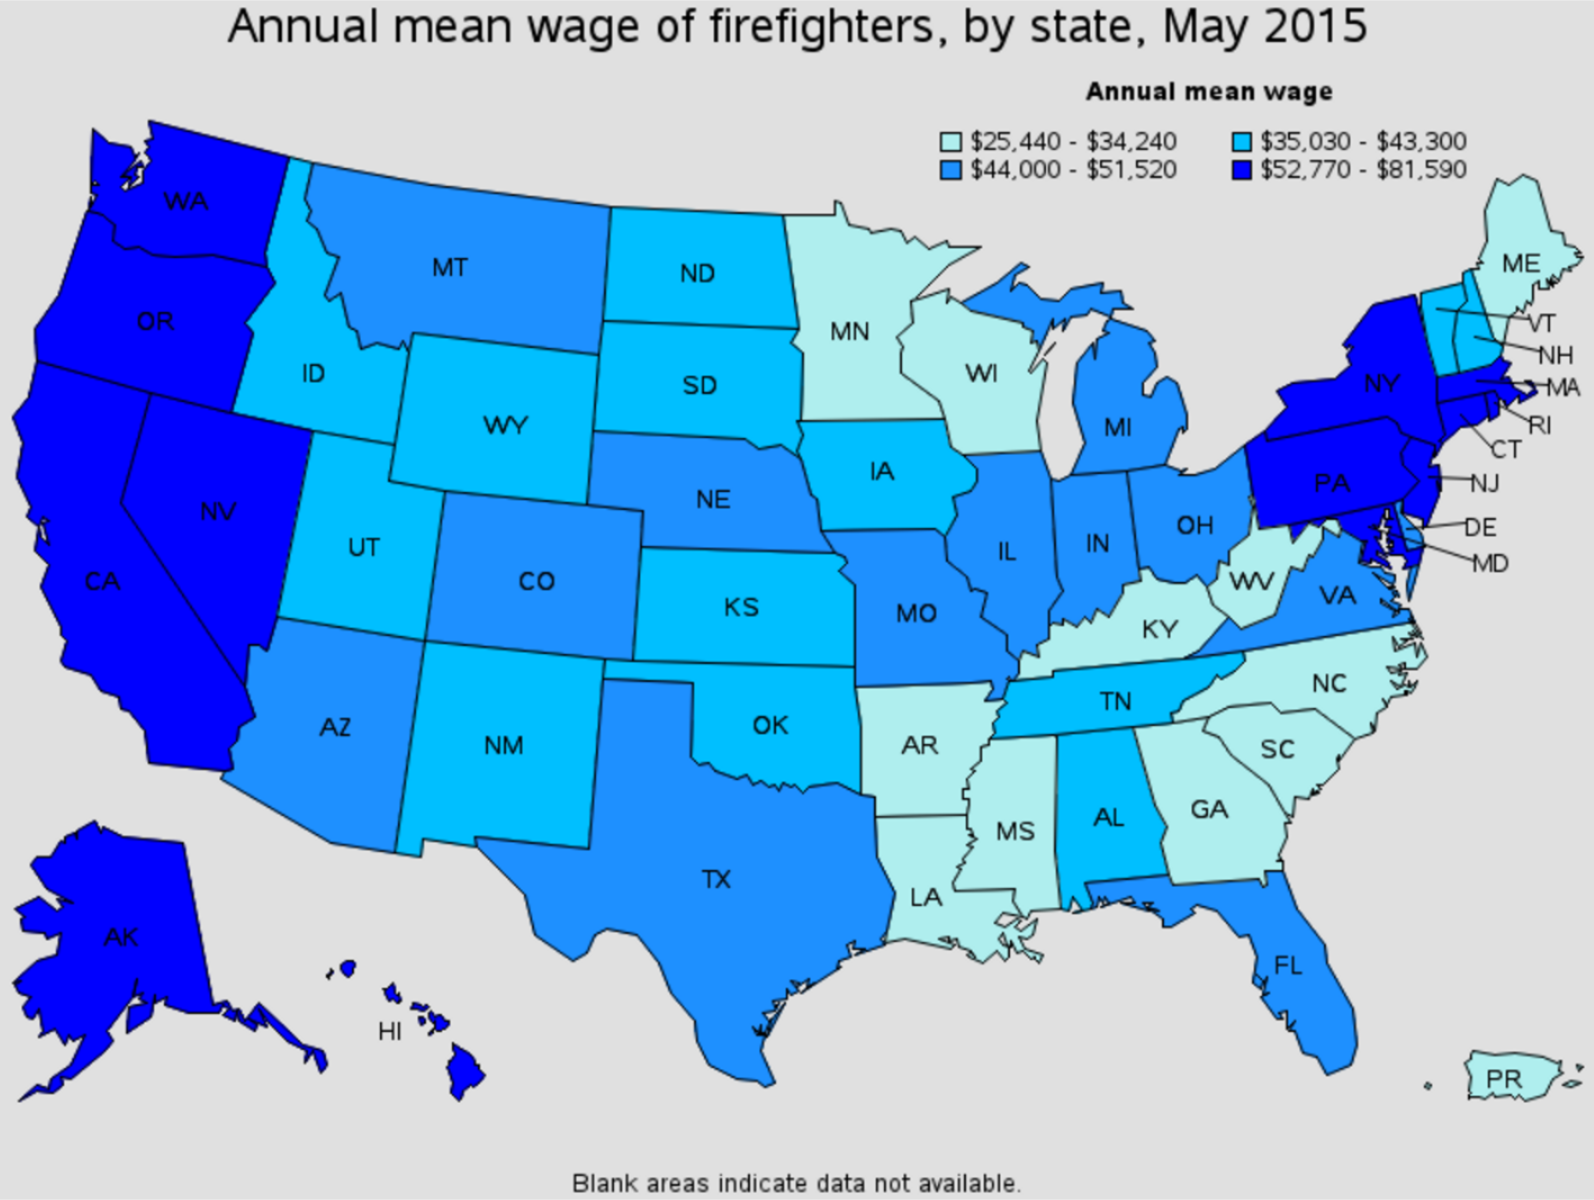 firefighter average salary by state Vanderwagen New Mexico